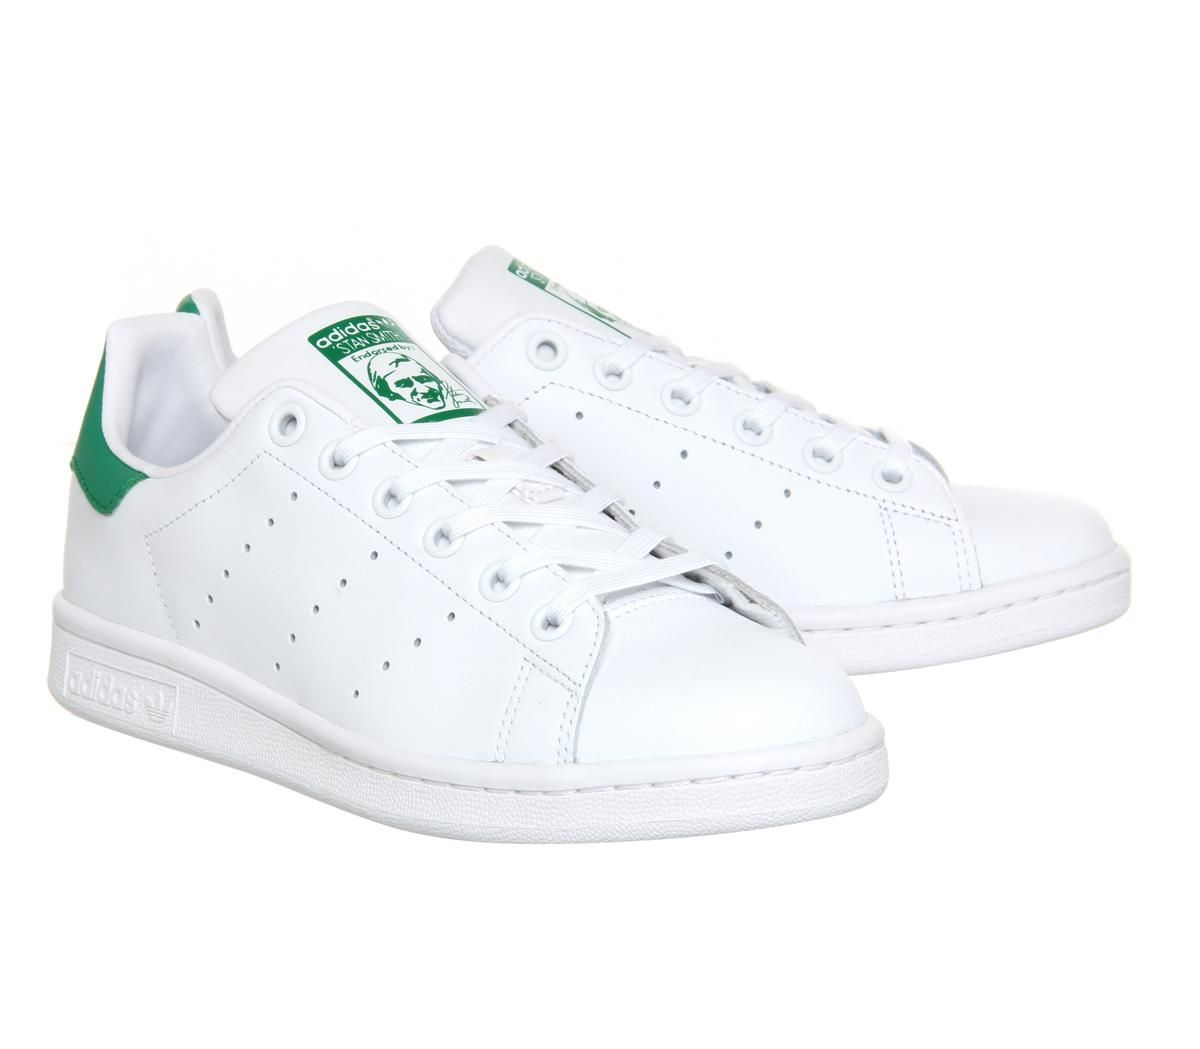 adidas stan smith bianche e verdi